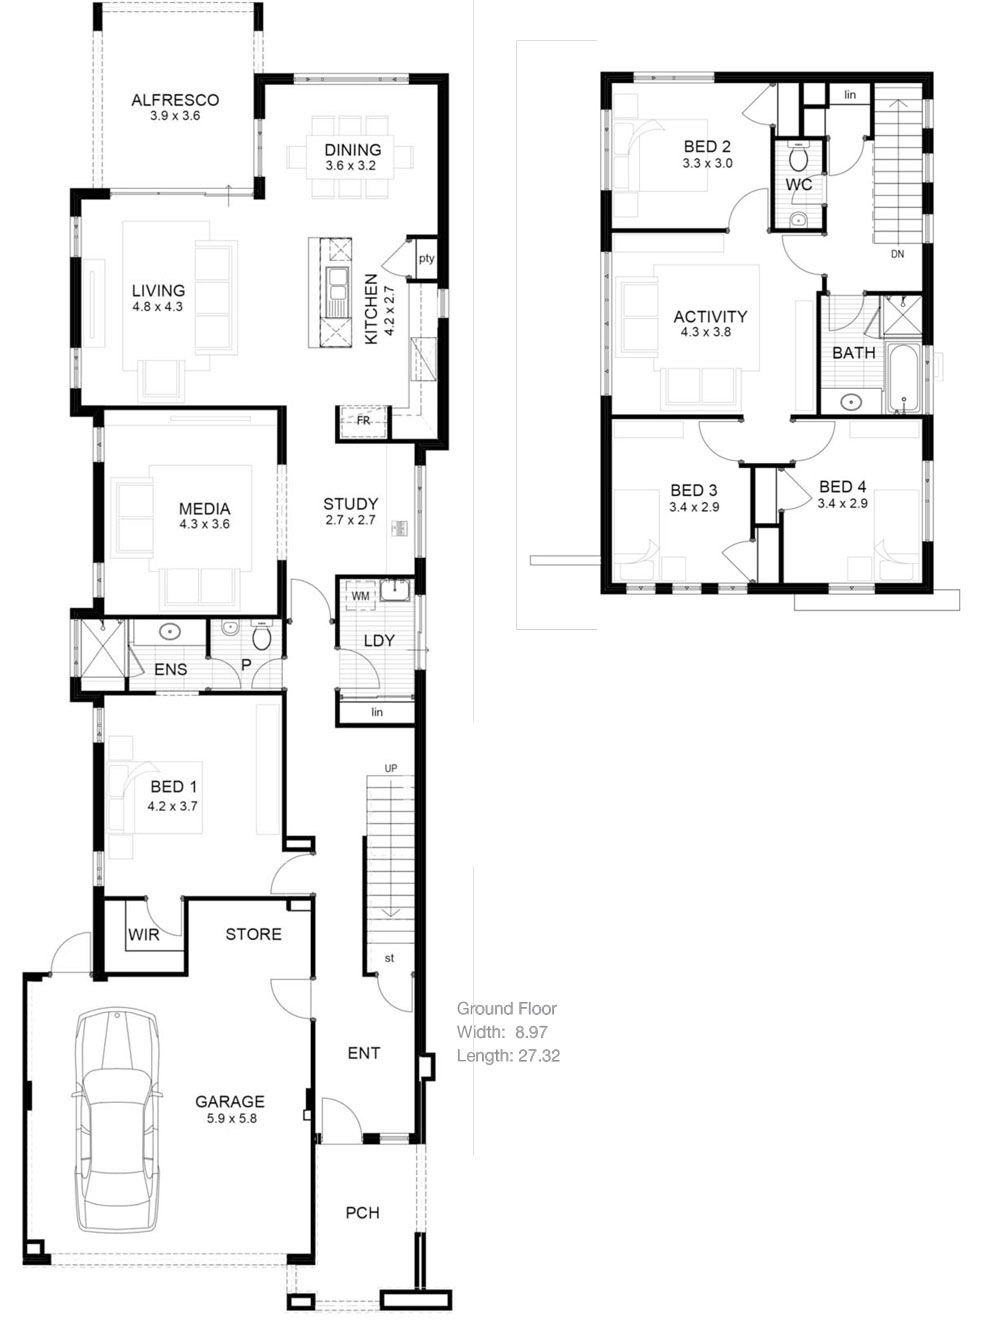 narrow house plans - Google Search | Narrow house designs ...